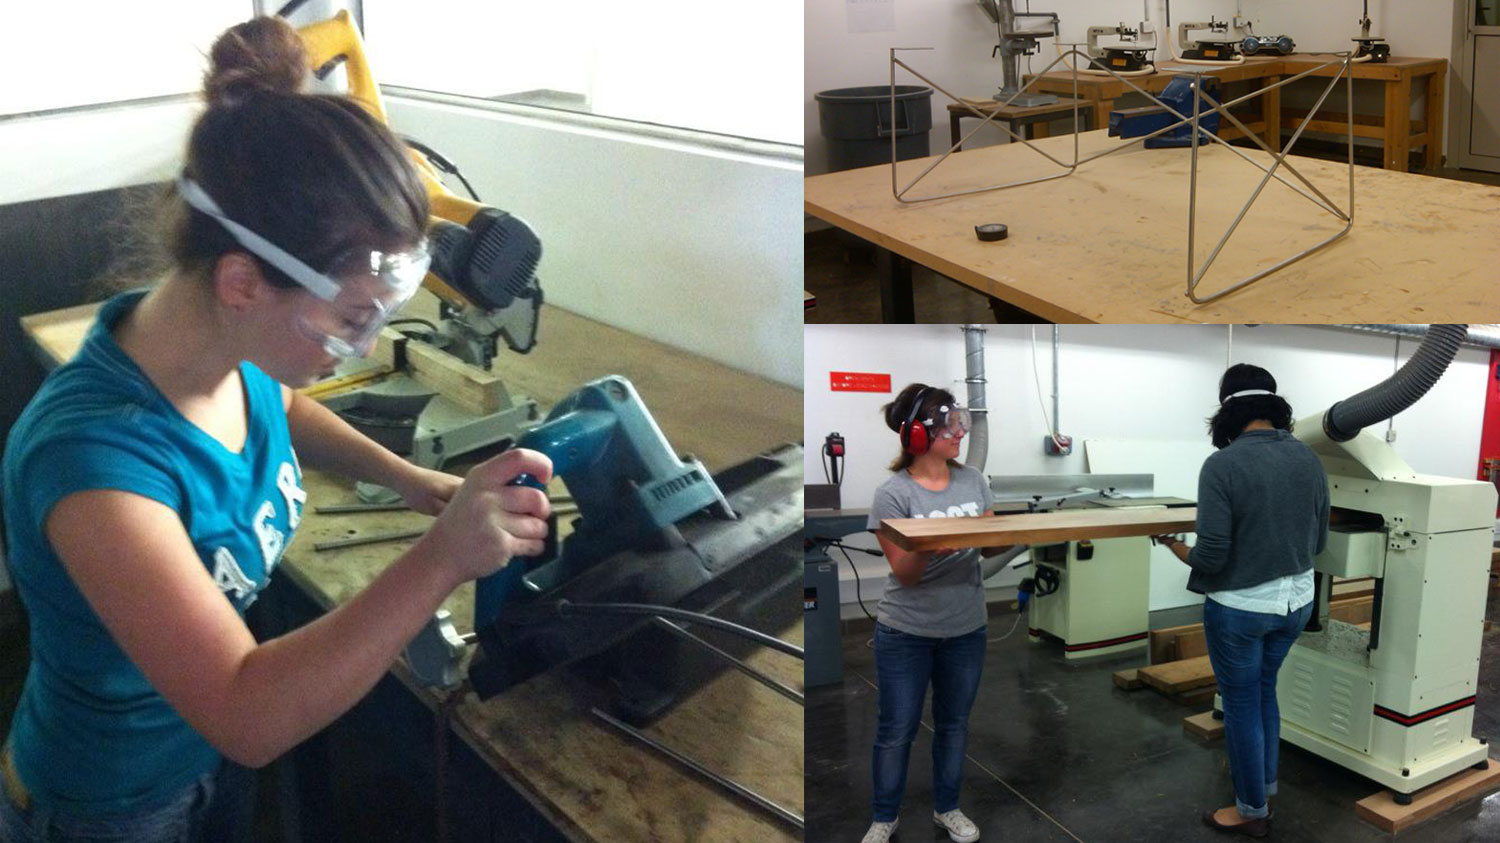 clockwise from left; cutting steel rods, bending rods into place for welding, planing the raw mahogany